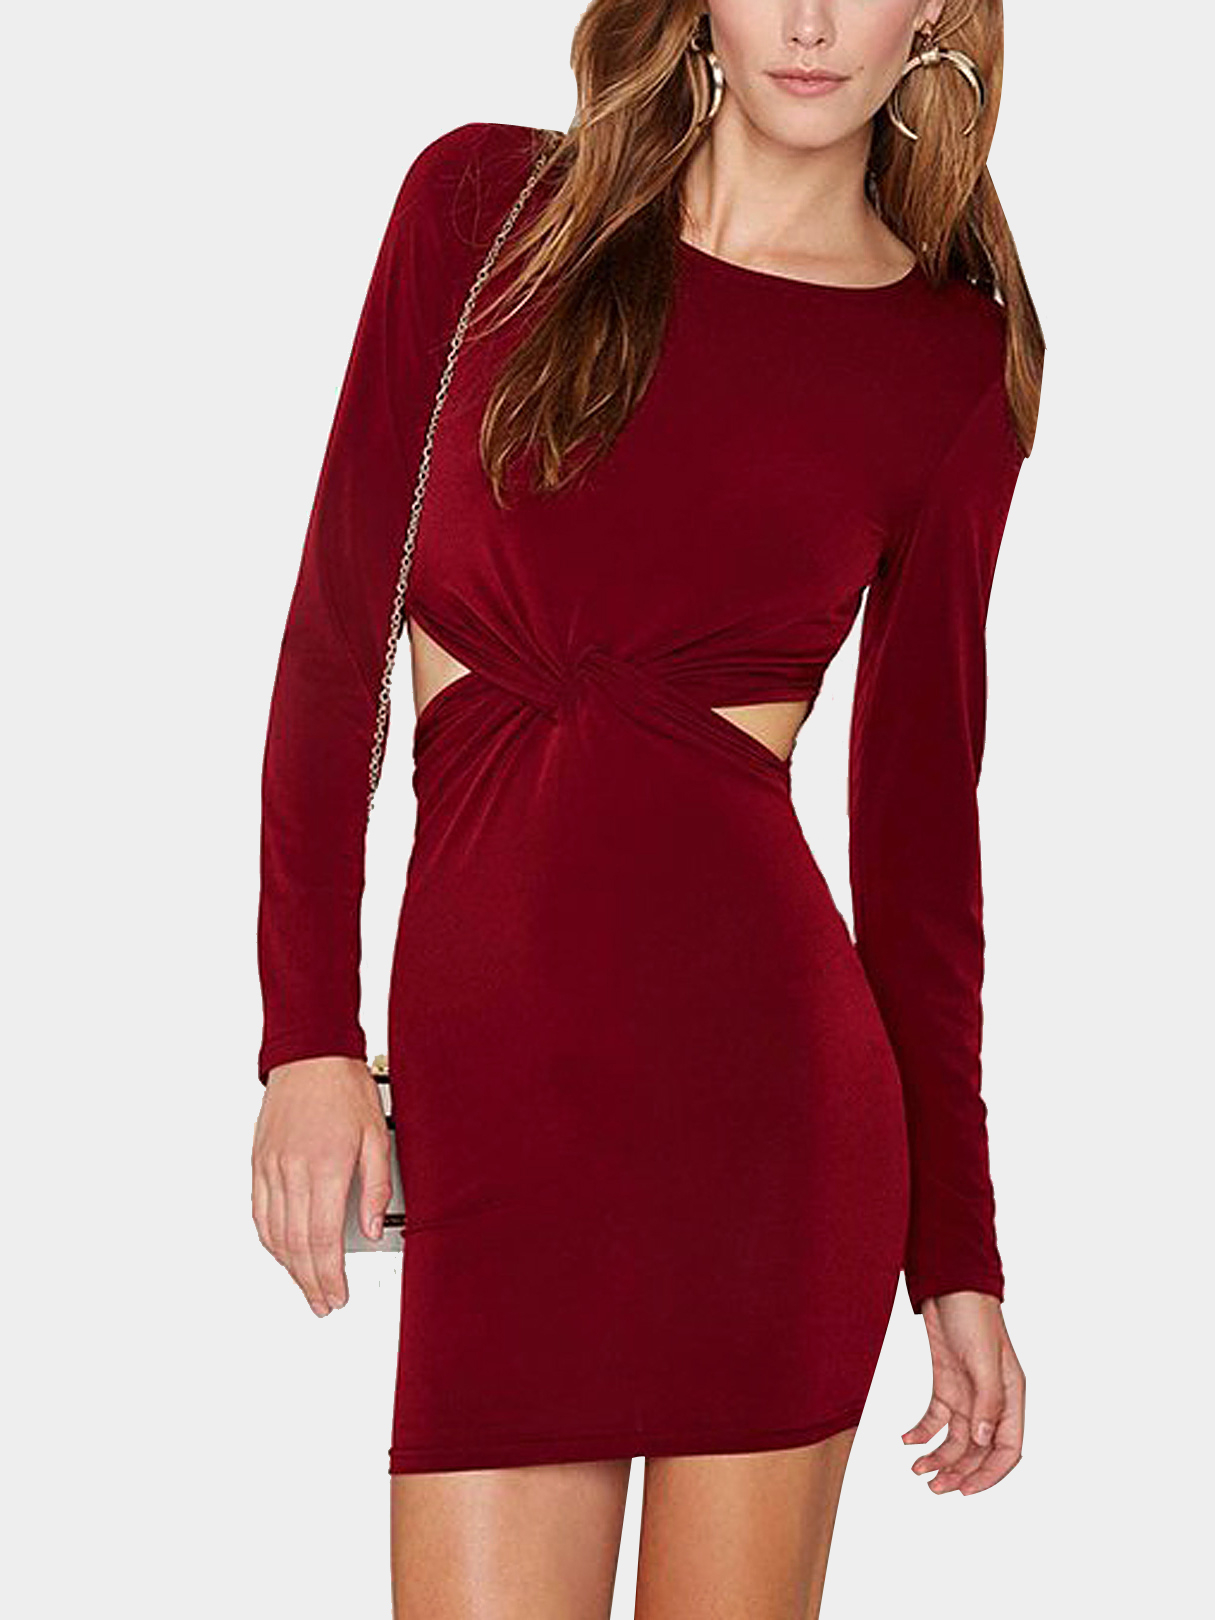 Knot Front Cutout Dress in Burgundy